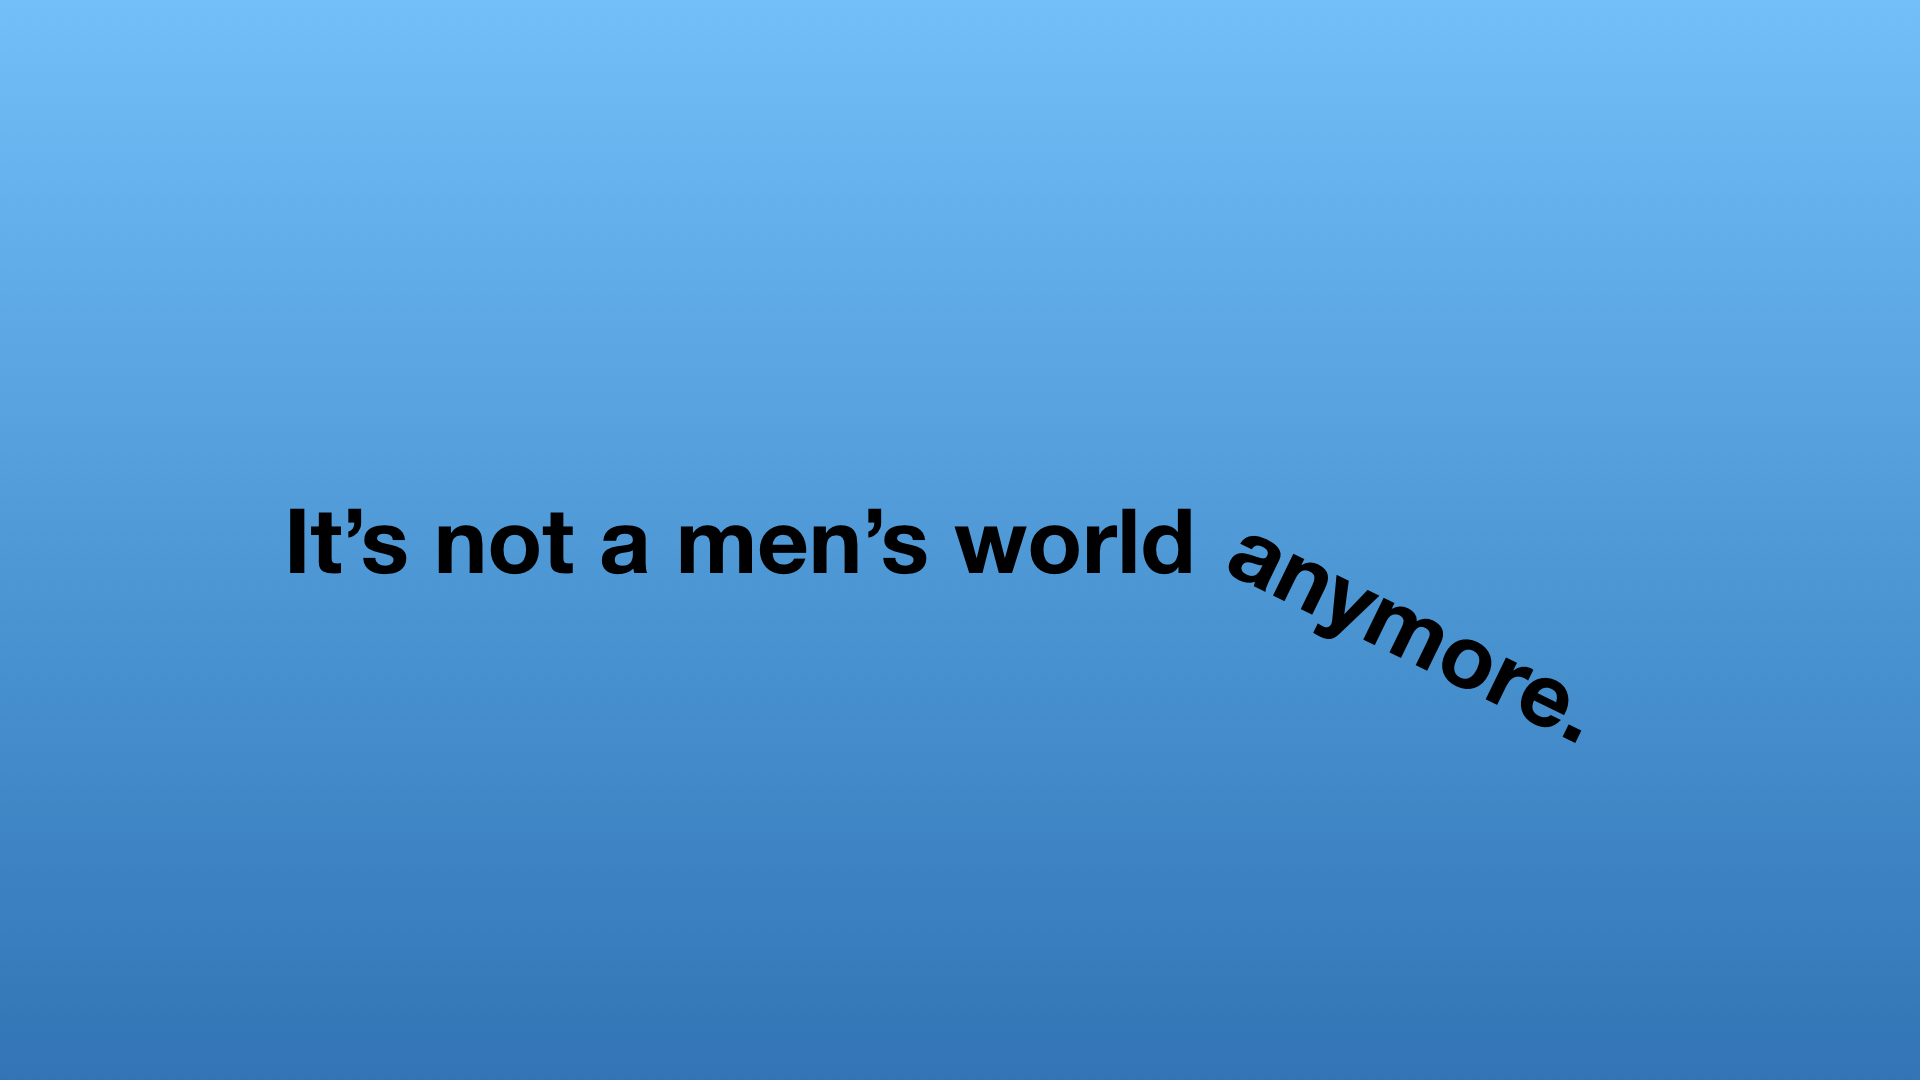 It is not a men's world anymore.